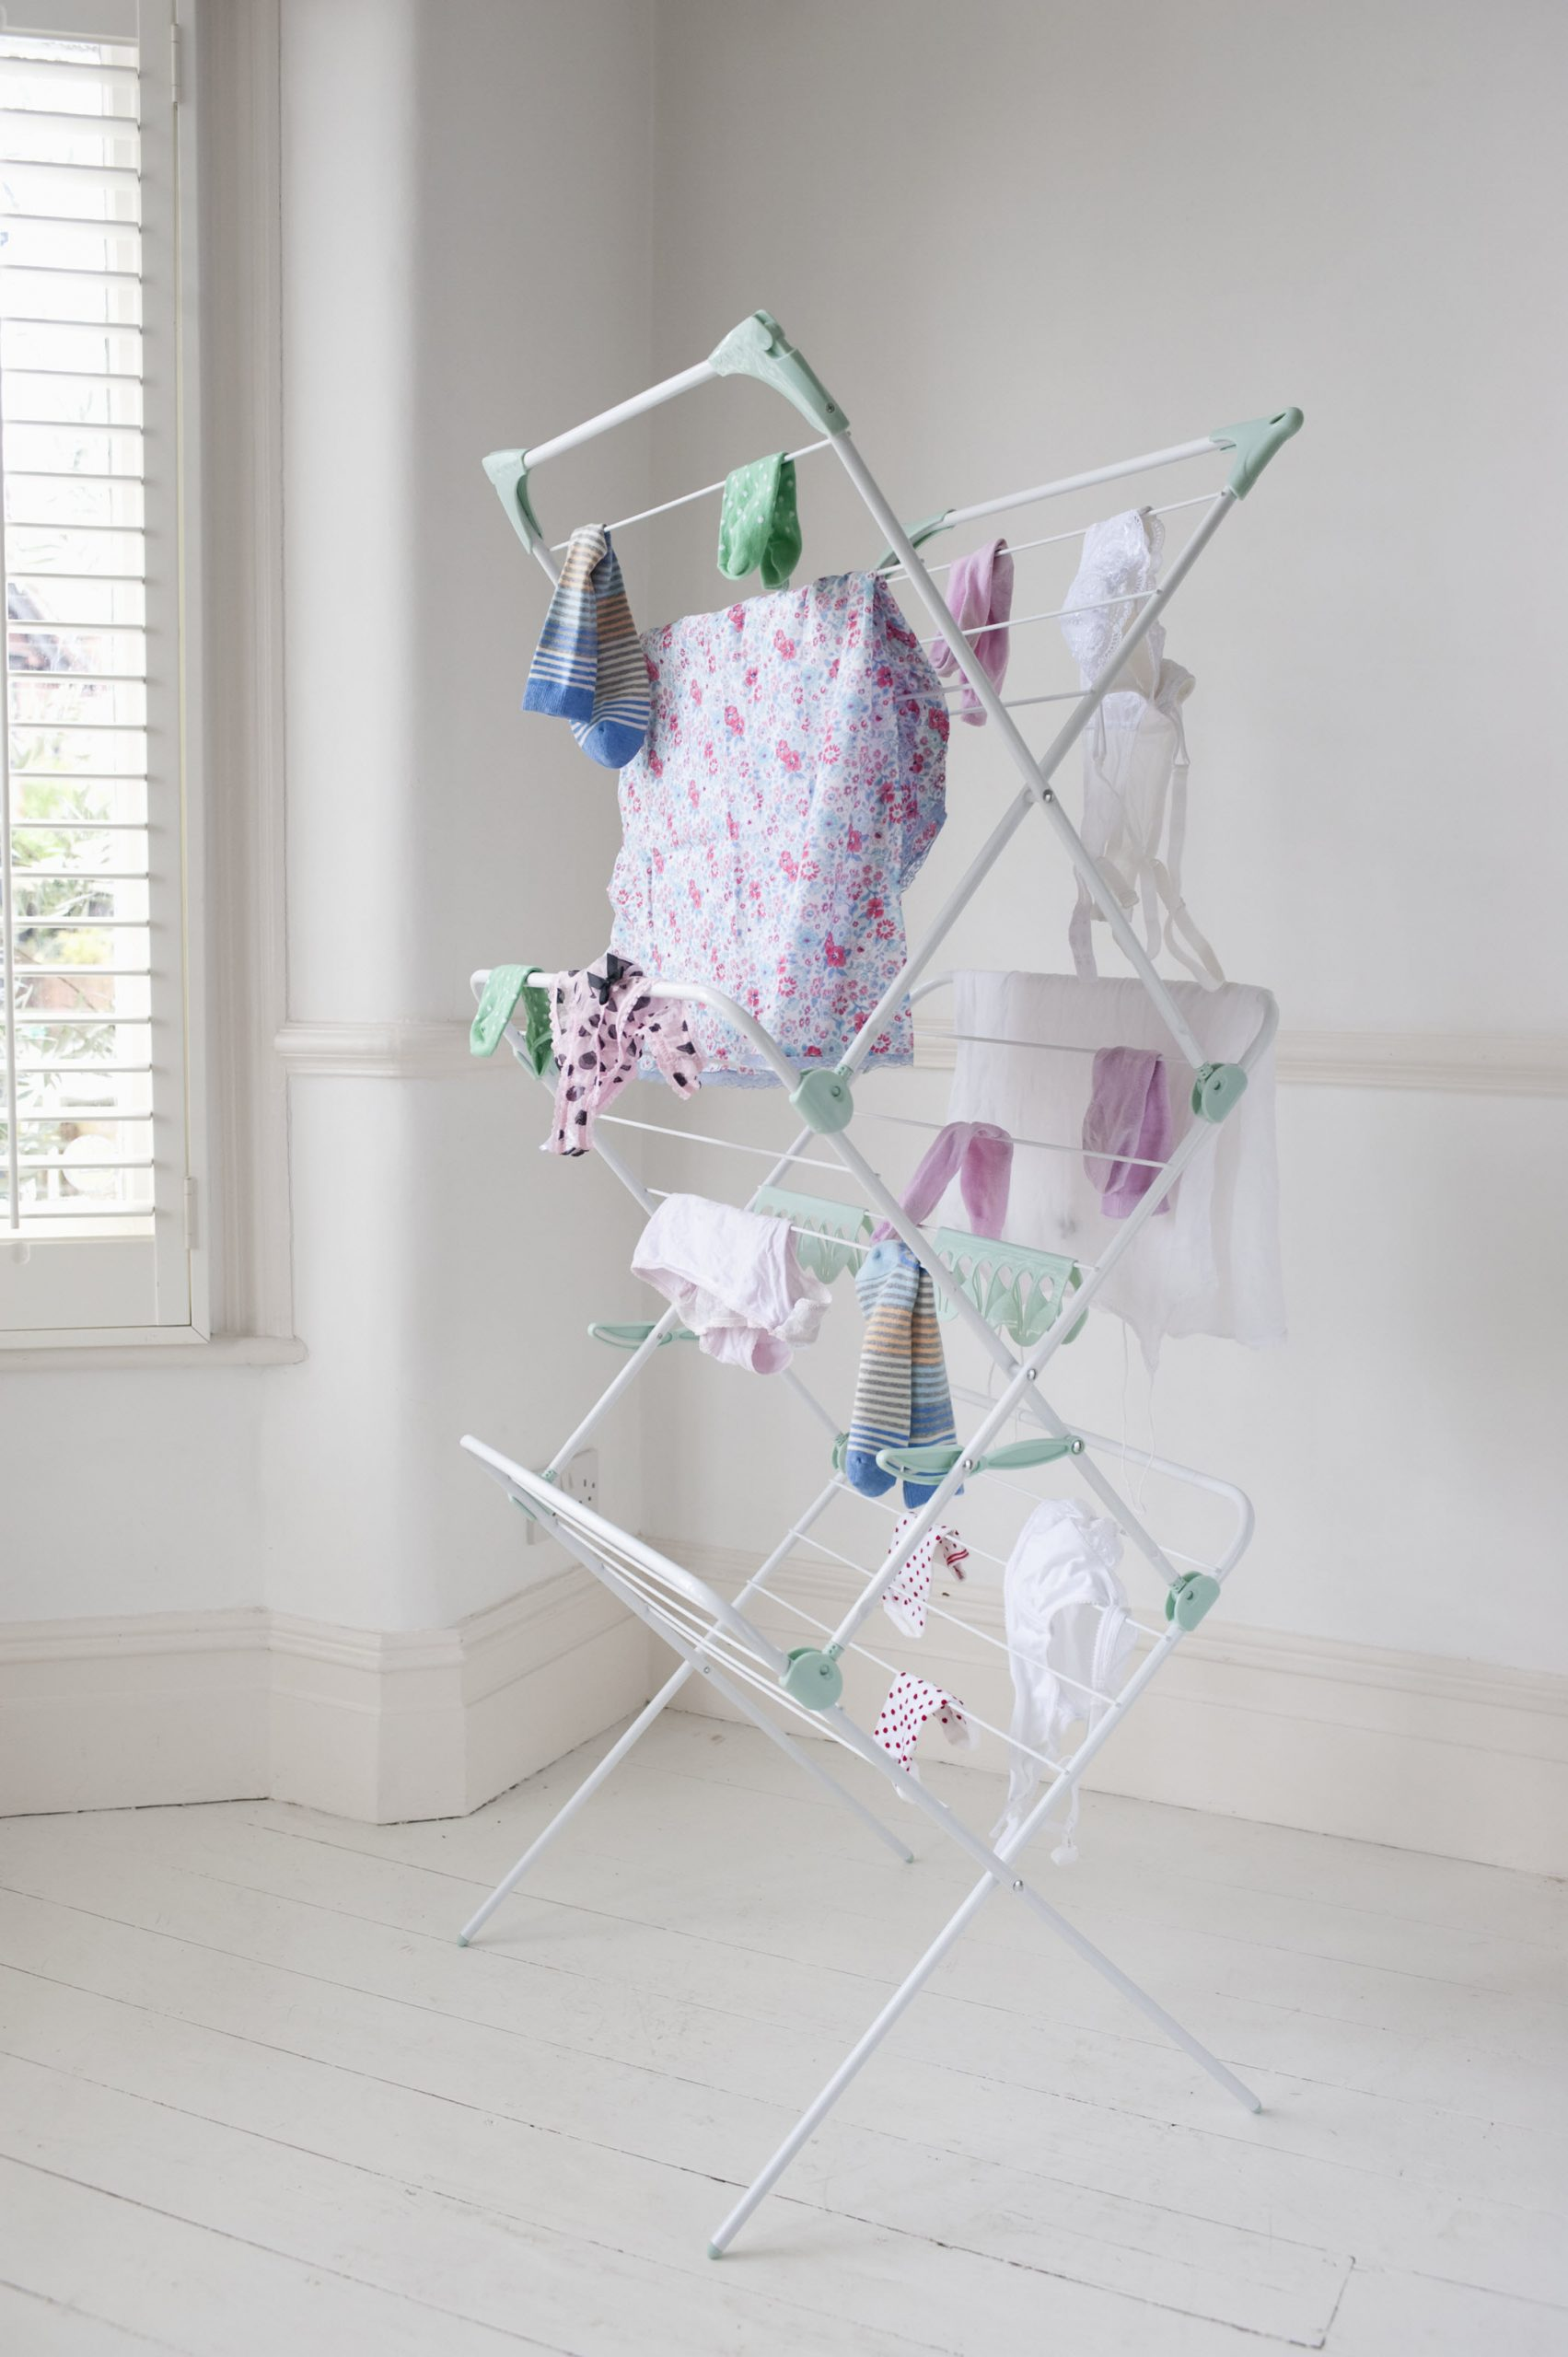 Clothes on laundry airer